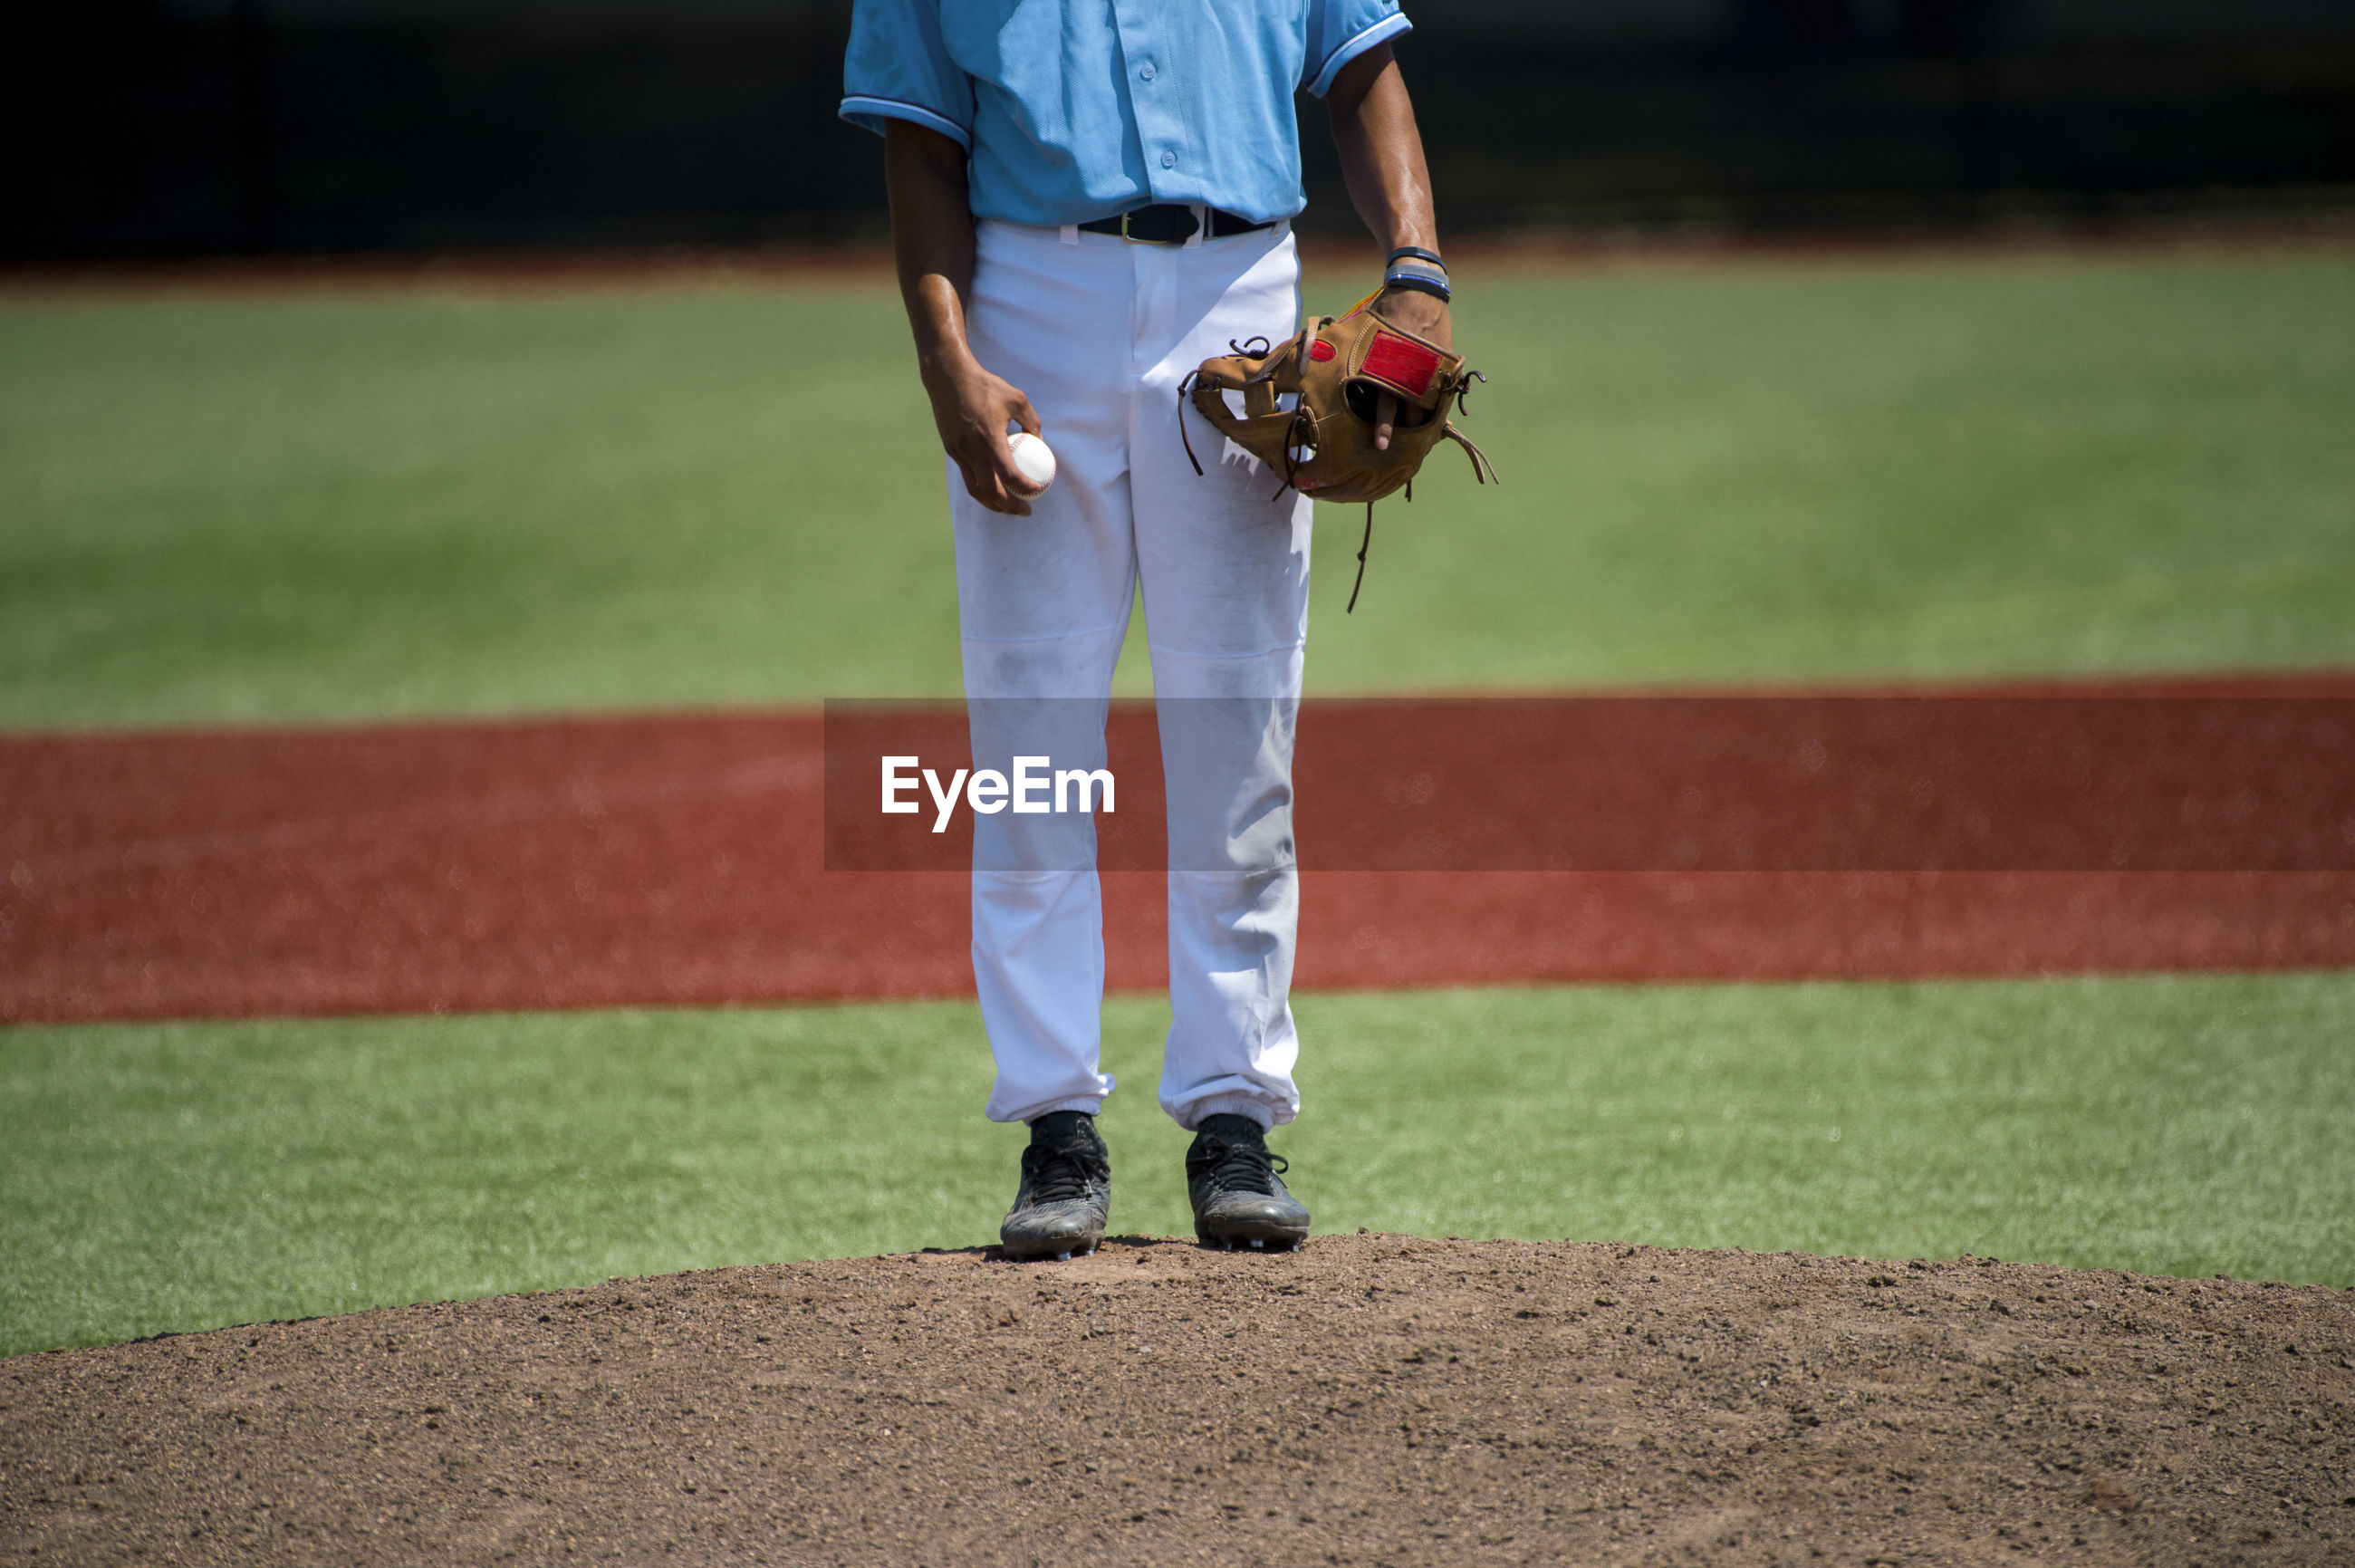 Low section of baseball player standing on playing field during sunny day